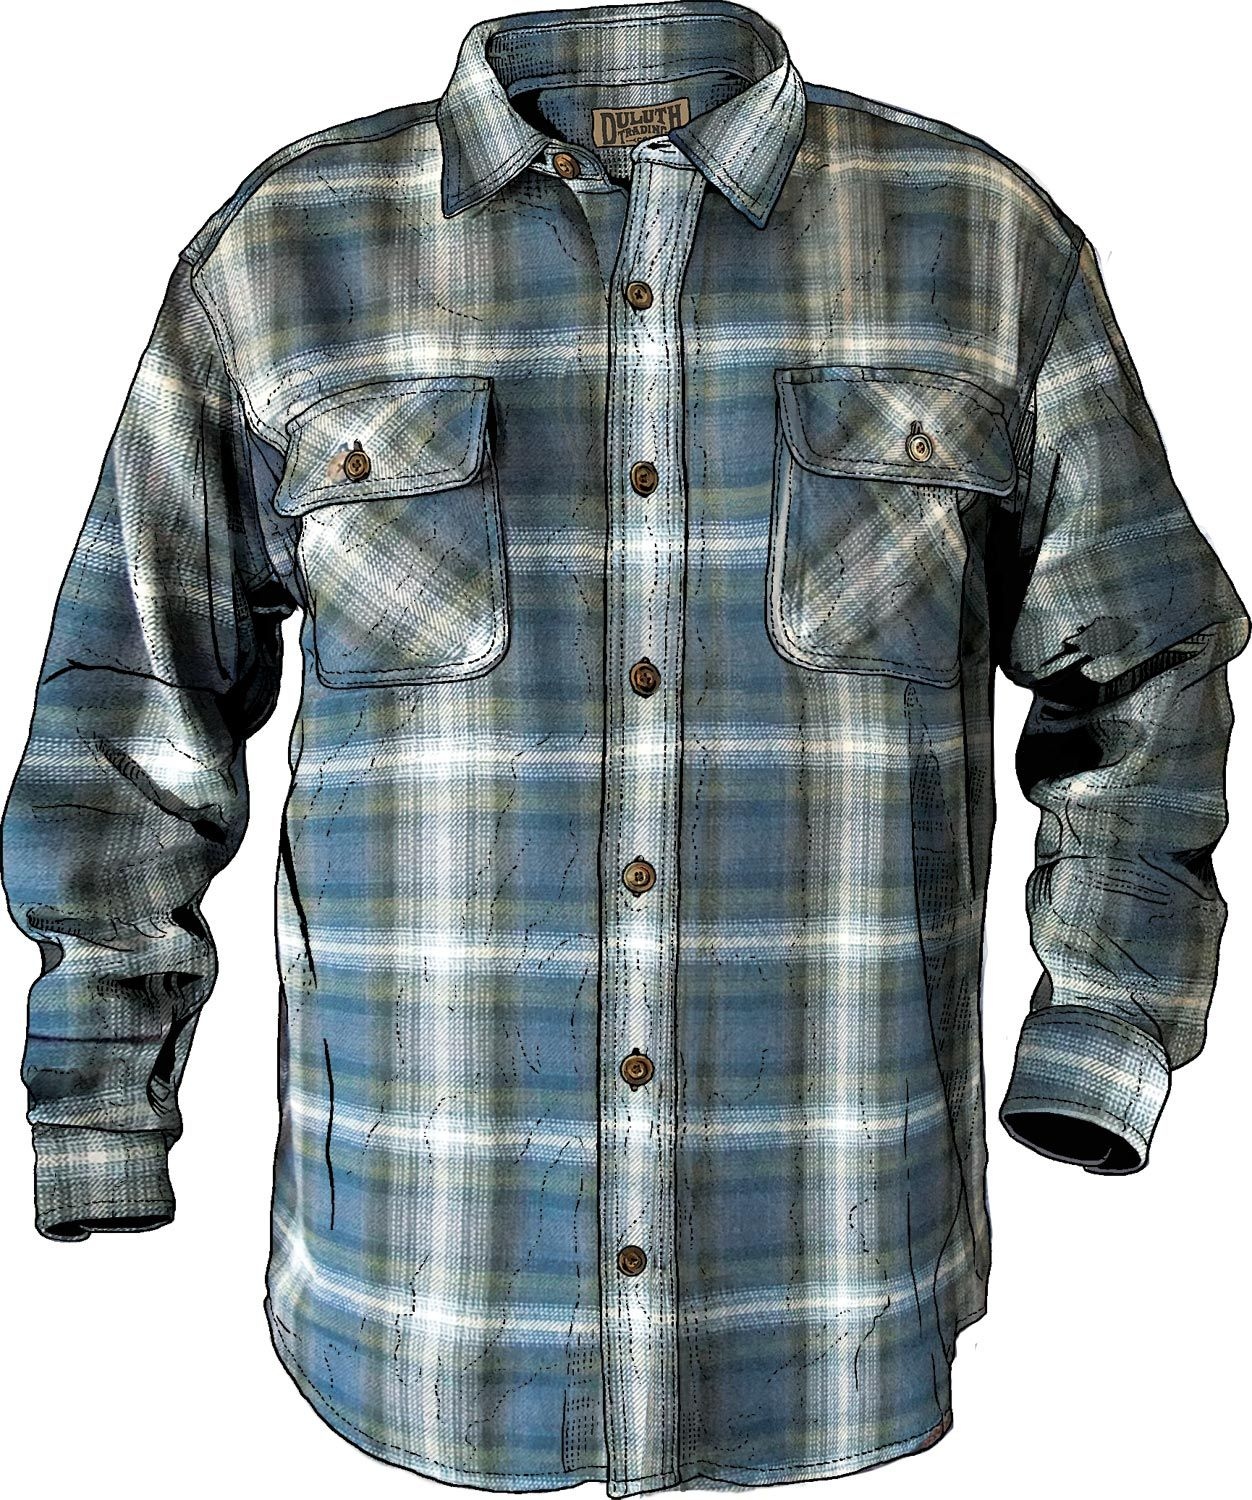 Flannel jacket with wool lining  Pin by John Latham on Wishlist  Pinterest  Flannel shirts